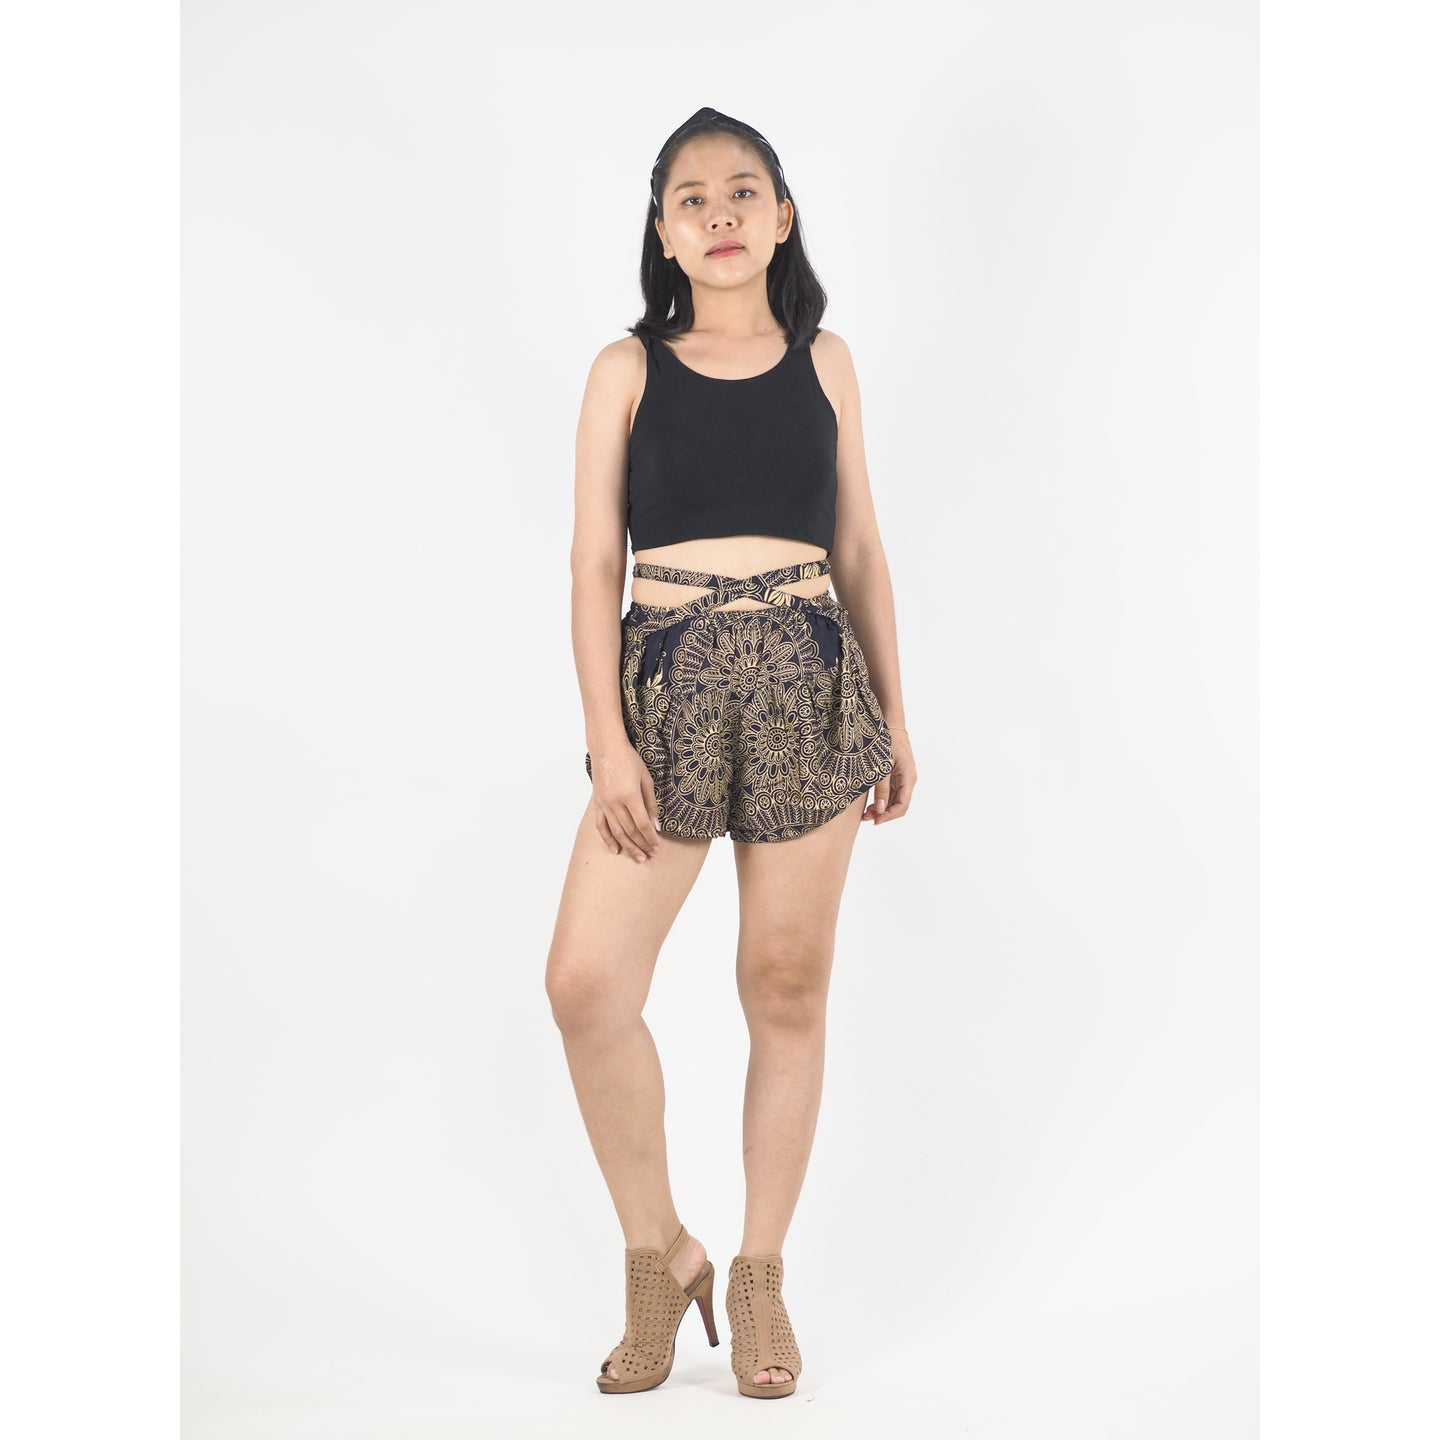 Mandala Women's Blooming Shorts Pants in Navy PP0206 020170 01